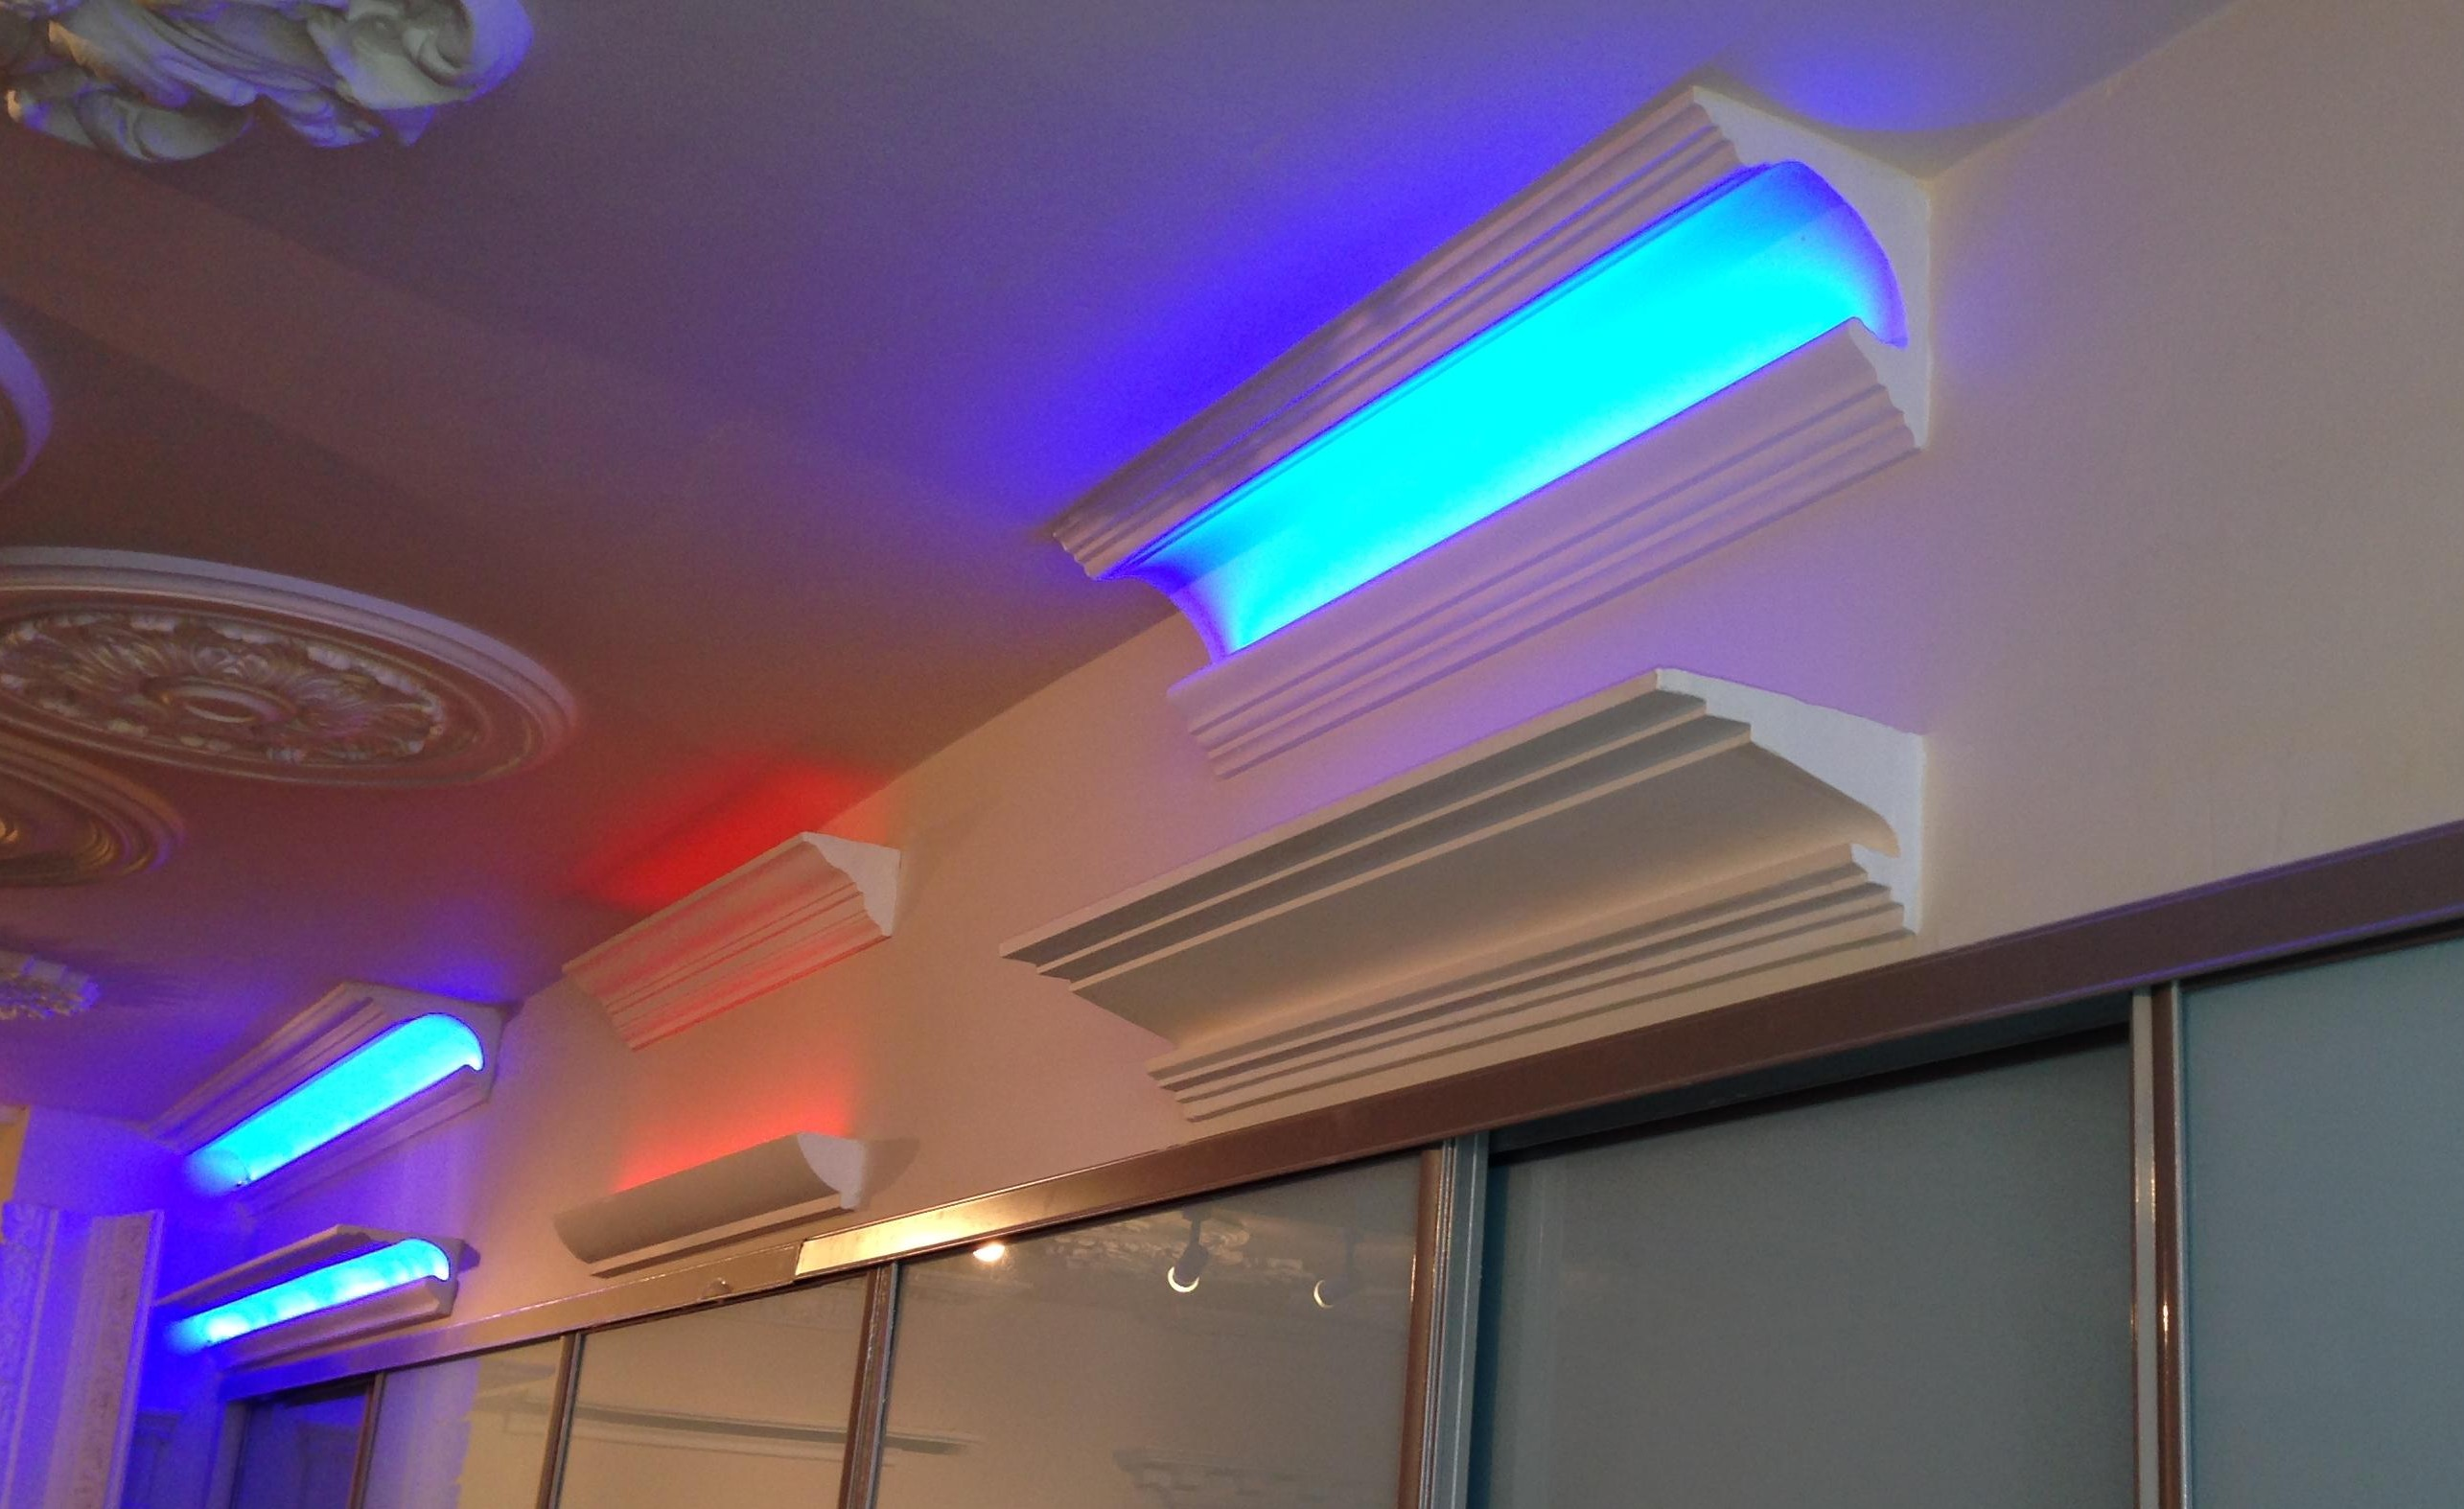 Lights/Air Functional & Coving Lighting - Lighting Troughs to Light any Room azcodes.com